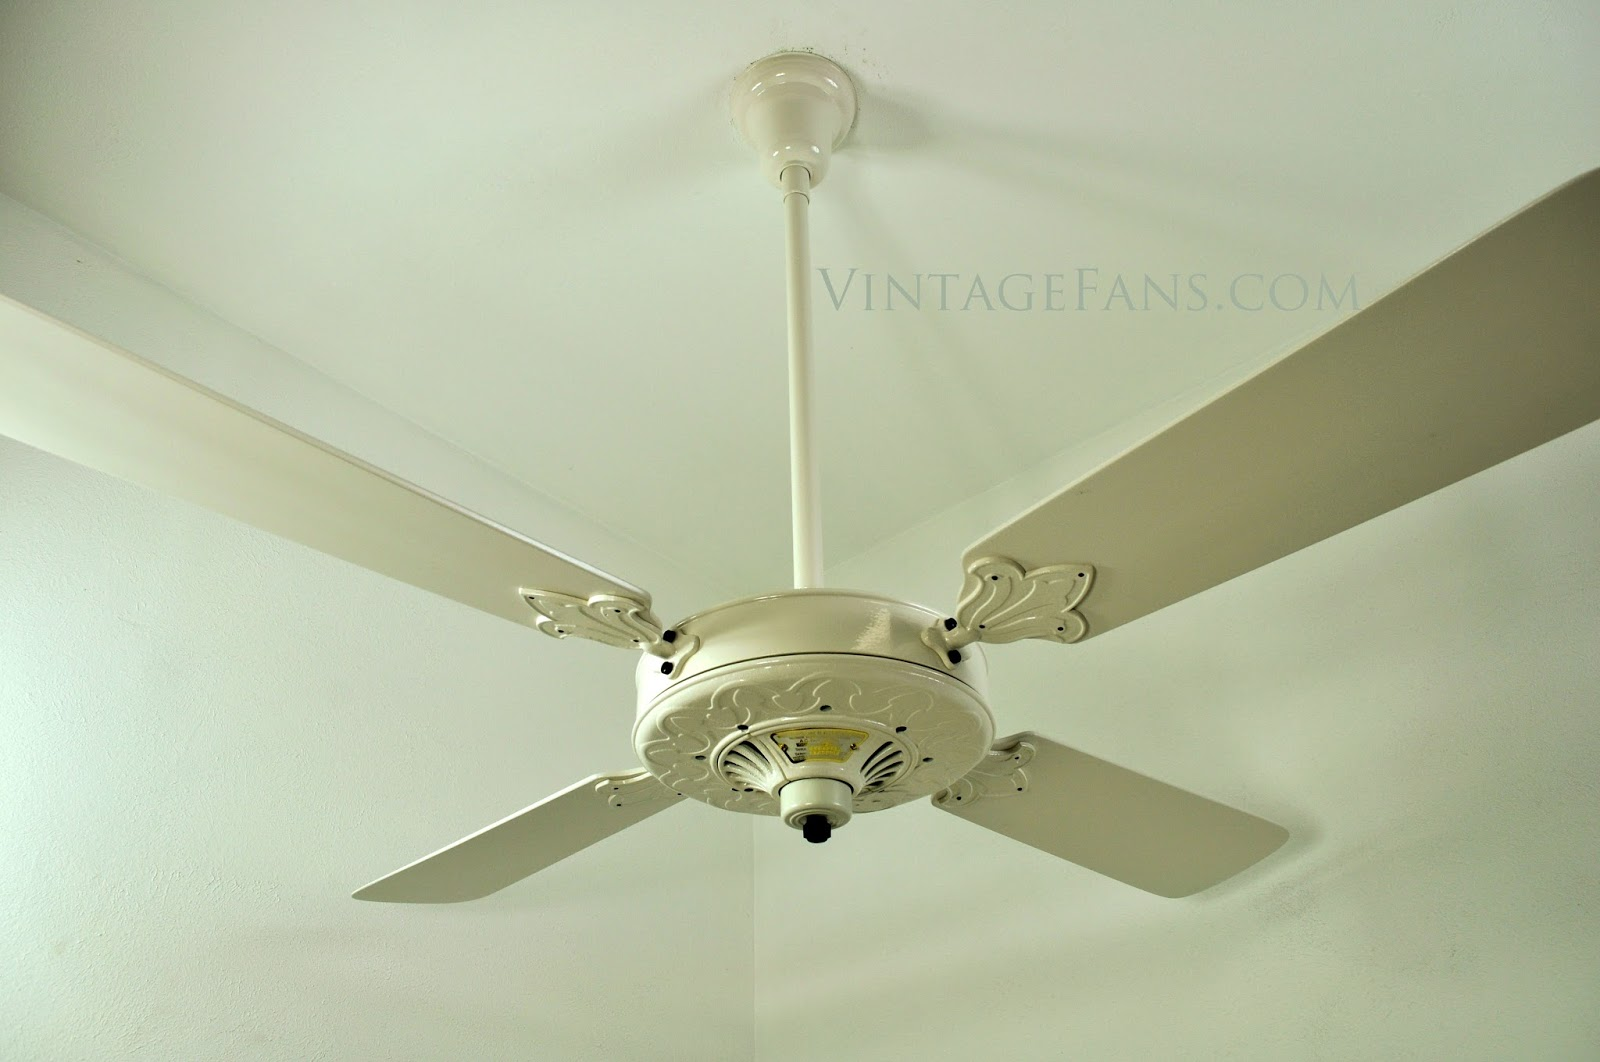 Vintage fans blog vintage fans llc gatsby style 1920s westinghouse ceiling fan featured at lucky brands pasadena ca store aloadofball Choice Image